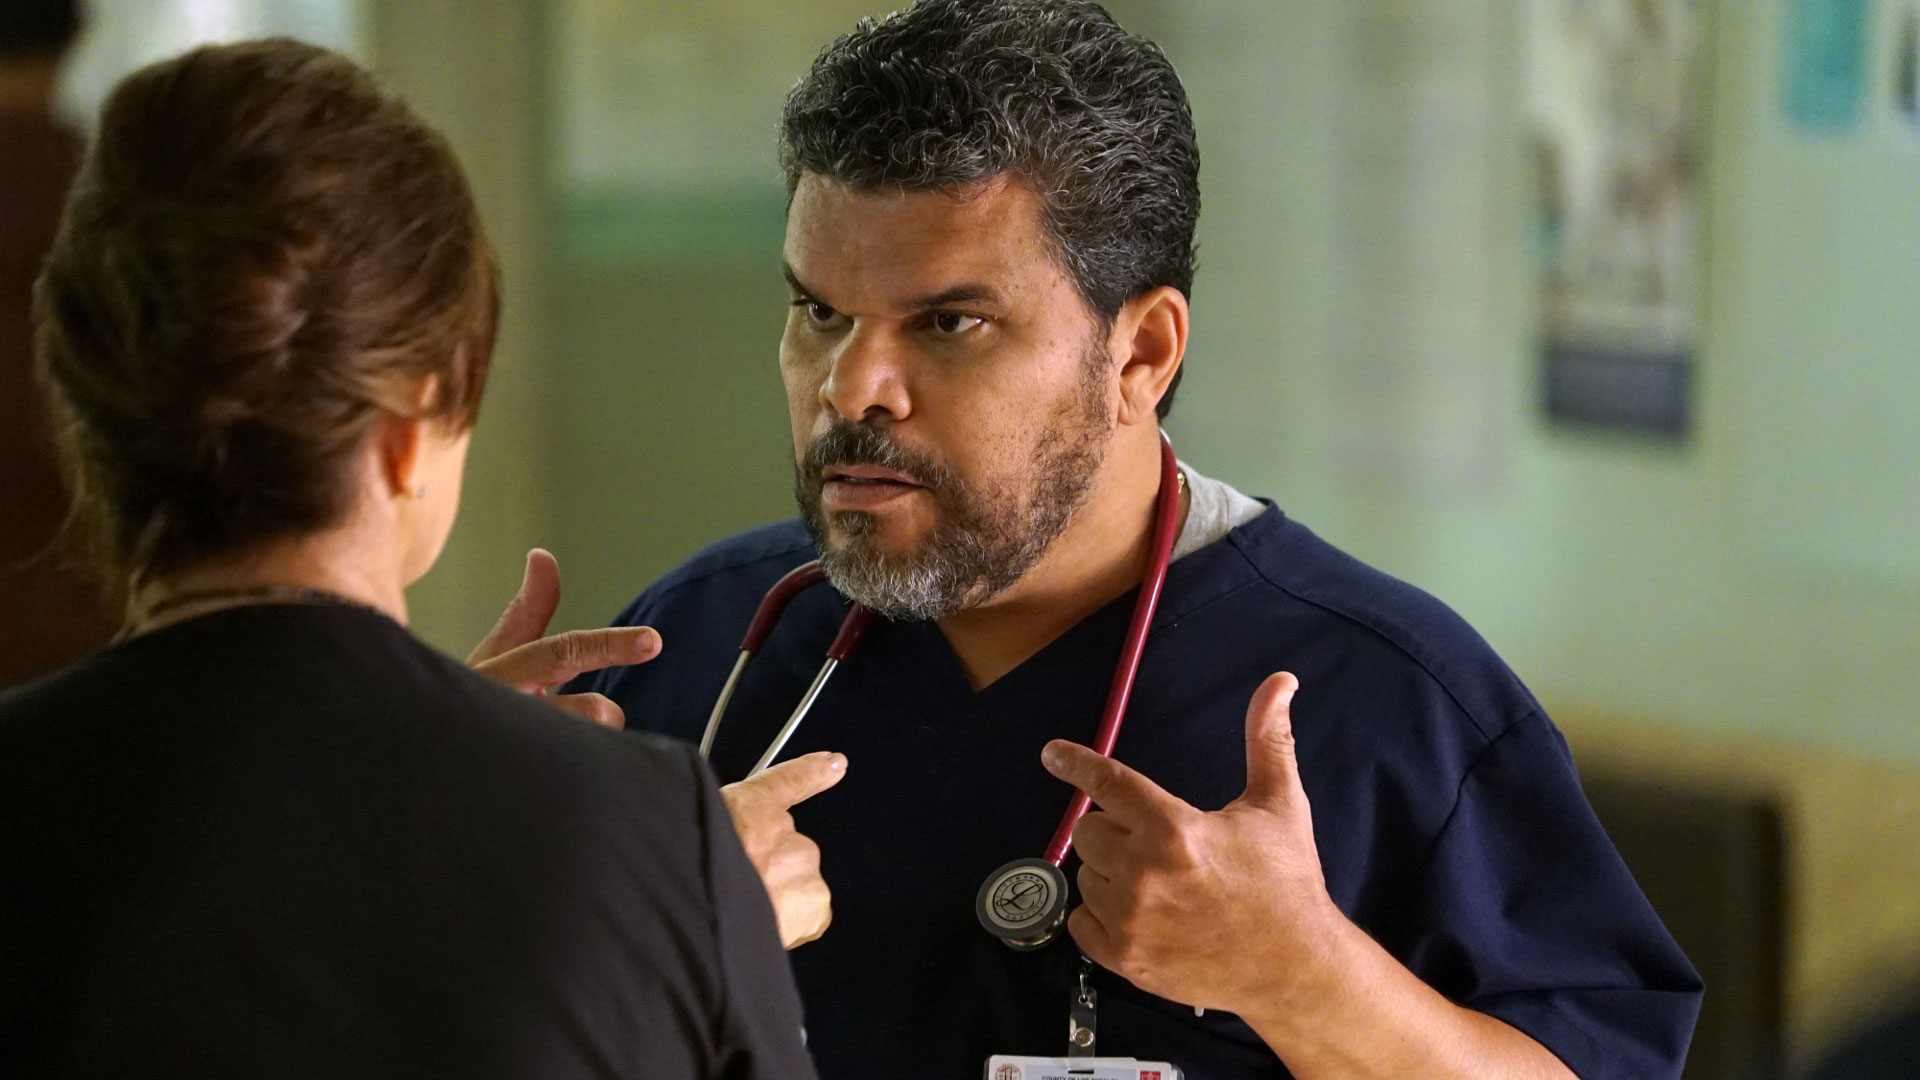 Marcia Gay Harden as Dr. Leanne Rorish and Luis Guzmán as Jesse Sallander